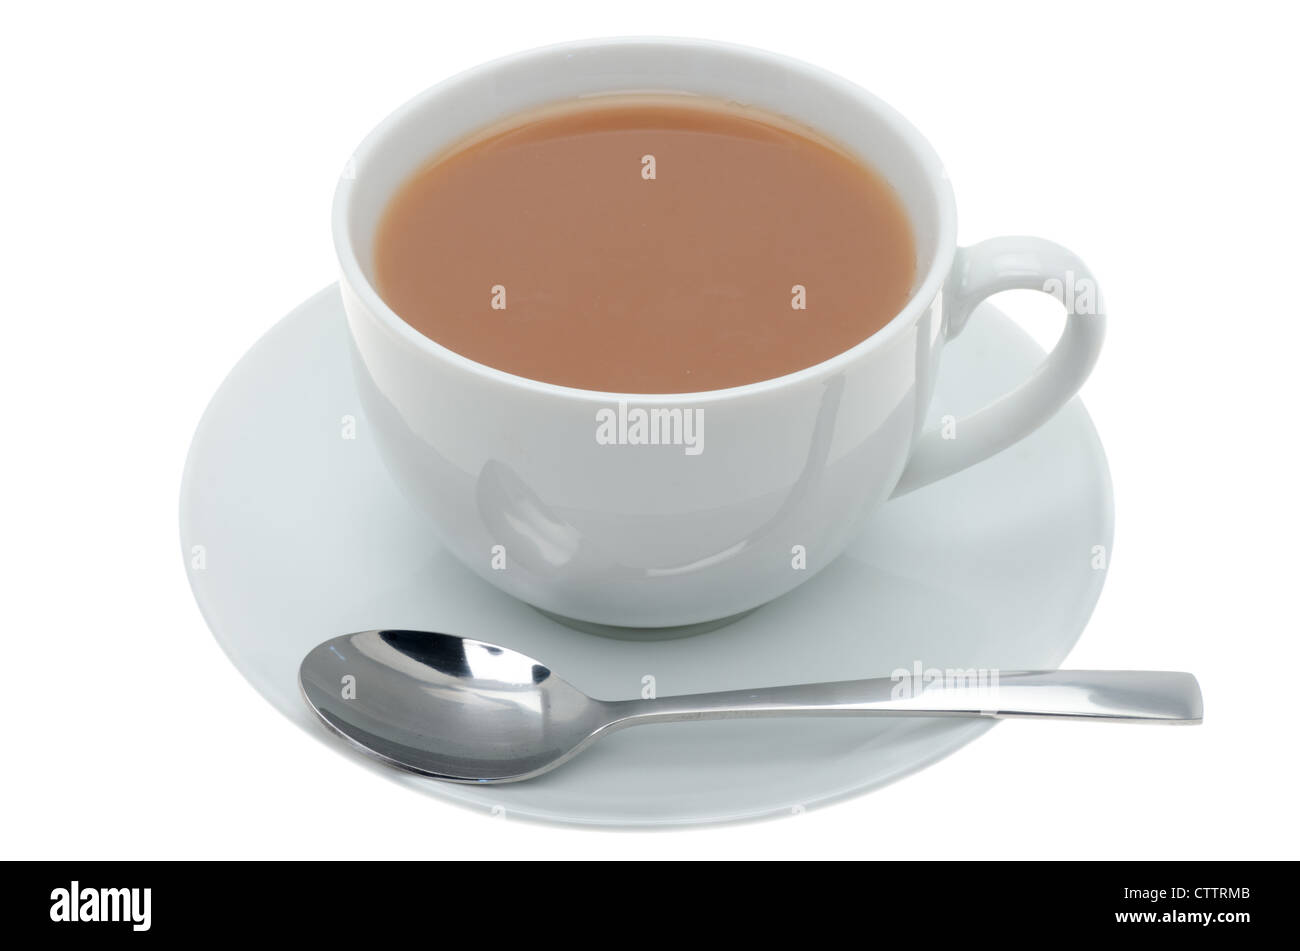 A cup of tea in white china crockery with a teaspoon - studio shot with a white background - Stock Image